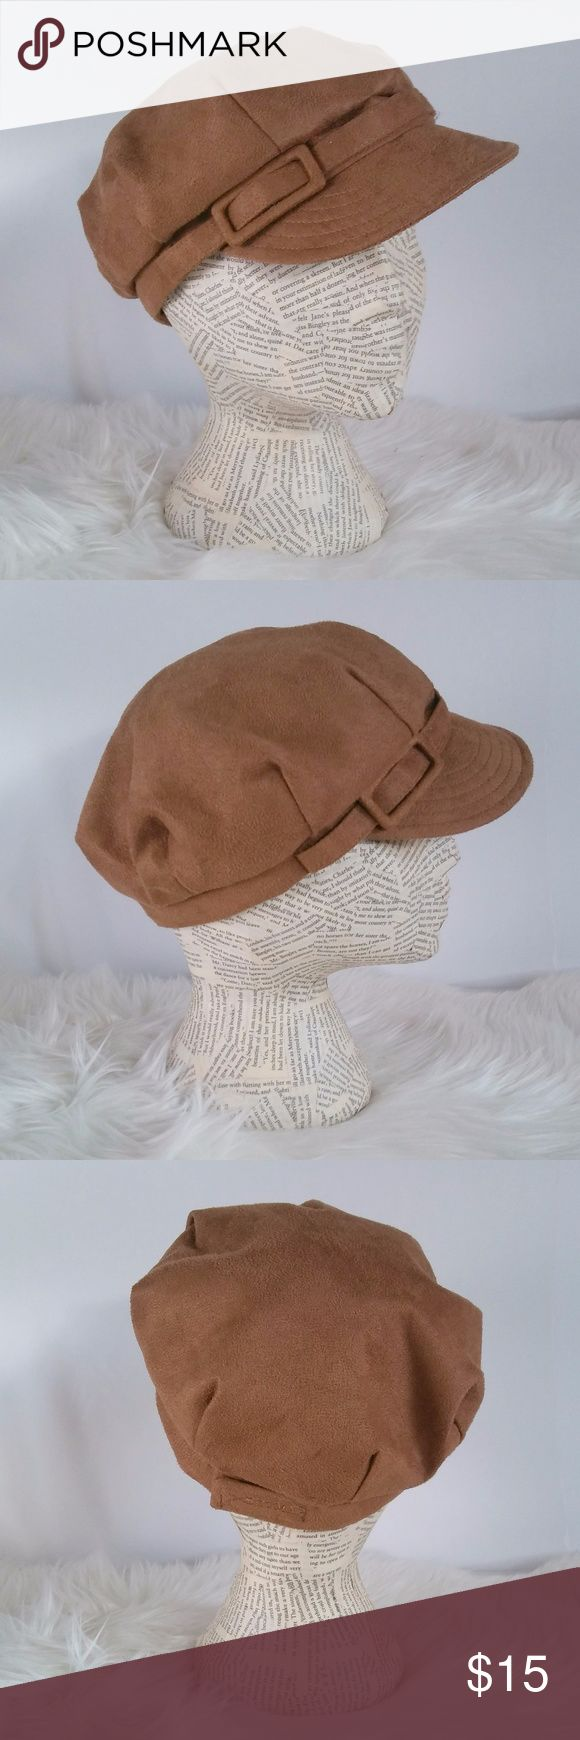 "Betmar of New York Suede Page Boy Hat NWOT Adorable little hat from a company that has been making hats since the Great Depression. But nothing depressing here, just a super cute, trendy fashion had that can easily double as a utility hat!   Brand: Betmar of New York Size: 23"" with 2"" adjustable velcro closure Color: Tan/caramel brown Fabric: faux suede, fully lined w/ cotton blend Care: Hand Clean Imported New With  Out Tags  Reasonable Offers Welcome! Bundle and Save on Shipping! Betmar of…"